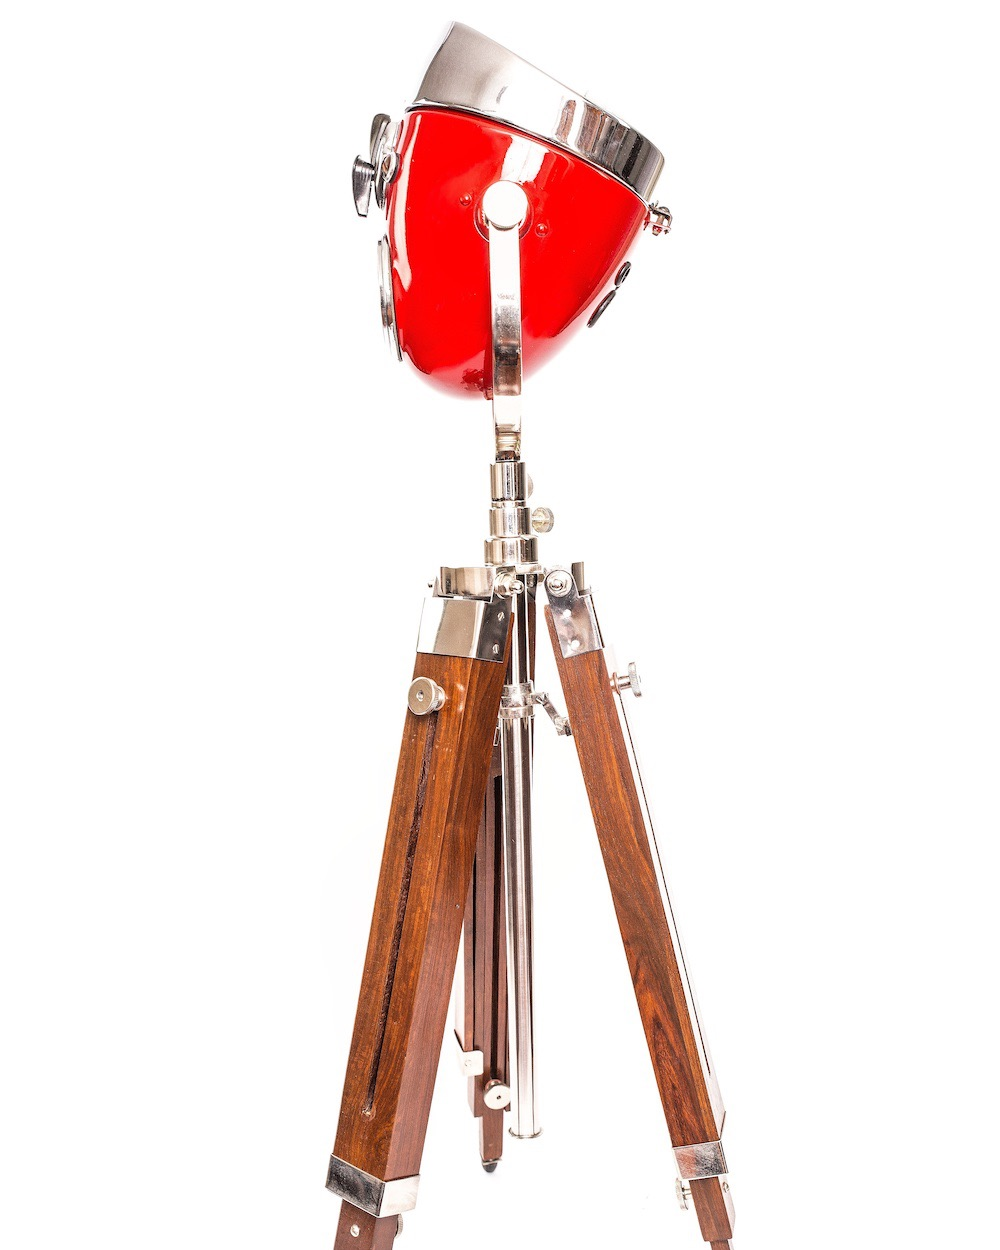 Modern Weld Vintage Floor Lamp Ural Headlight Red